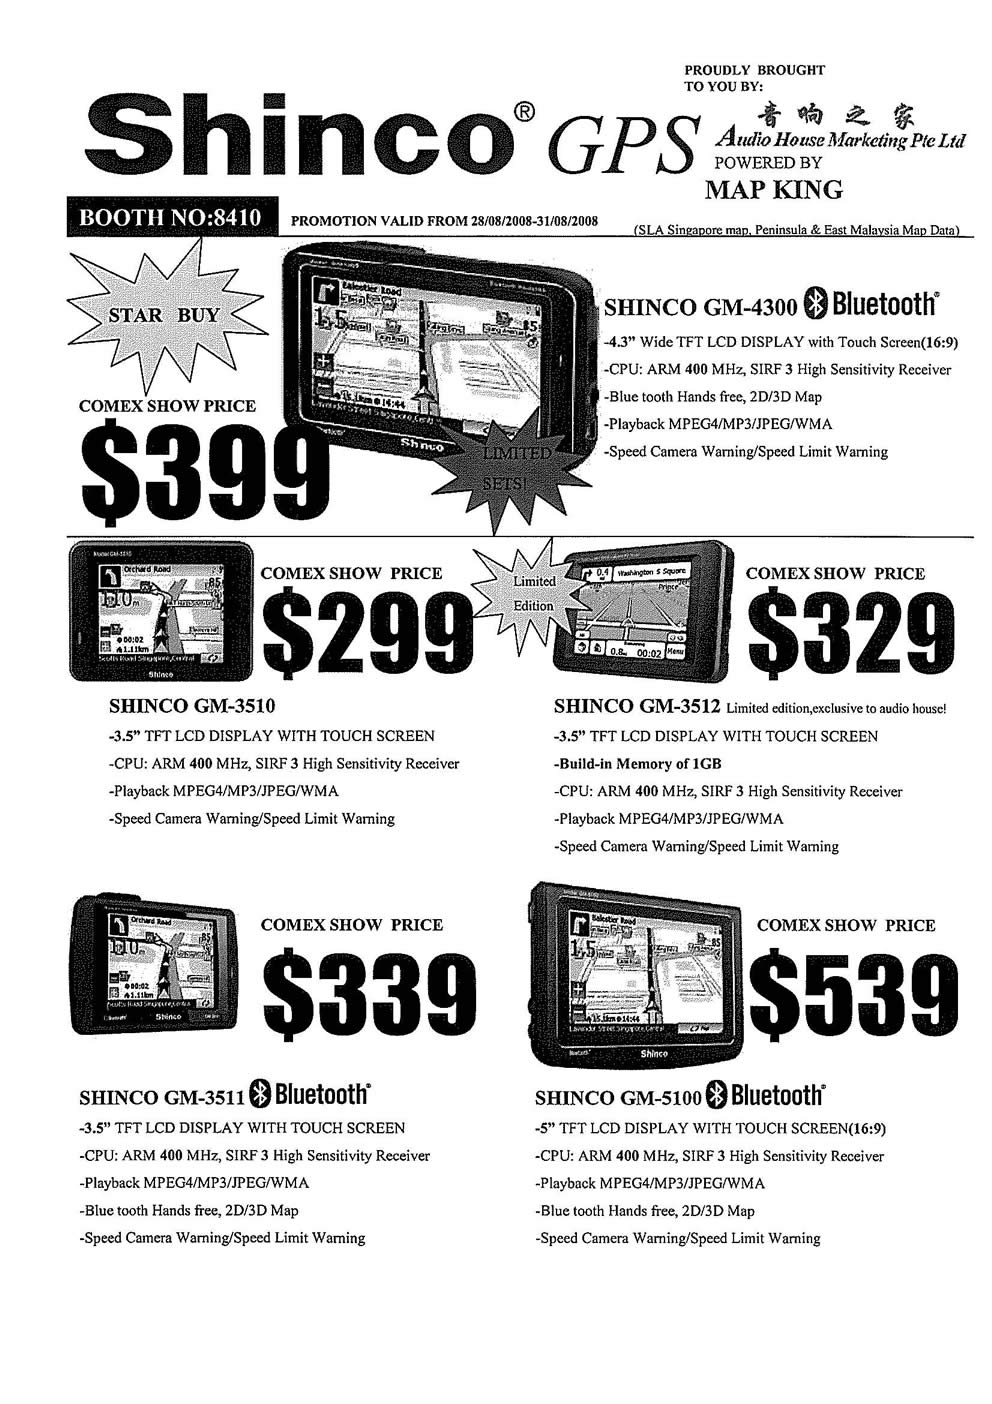 Comex 2008 price list image brochure of Shinco Gps  Page 2